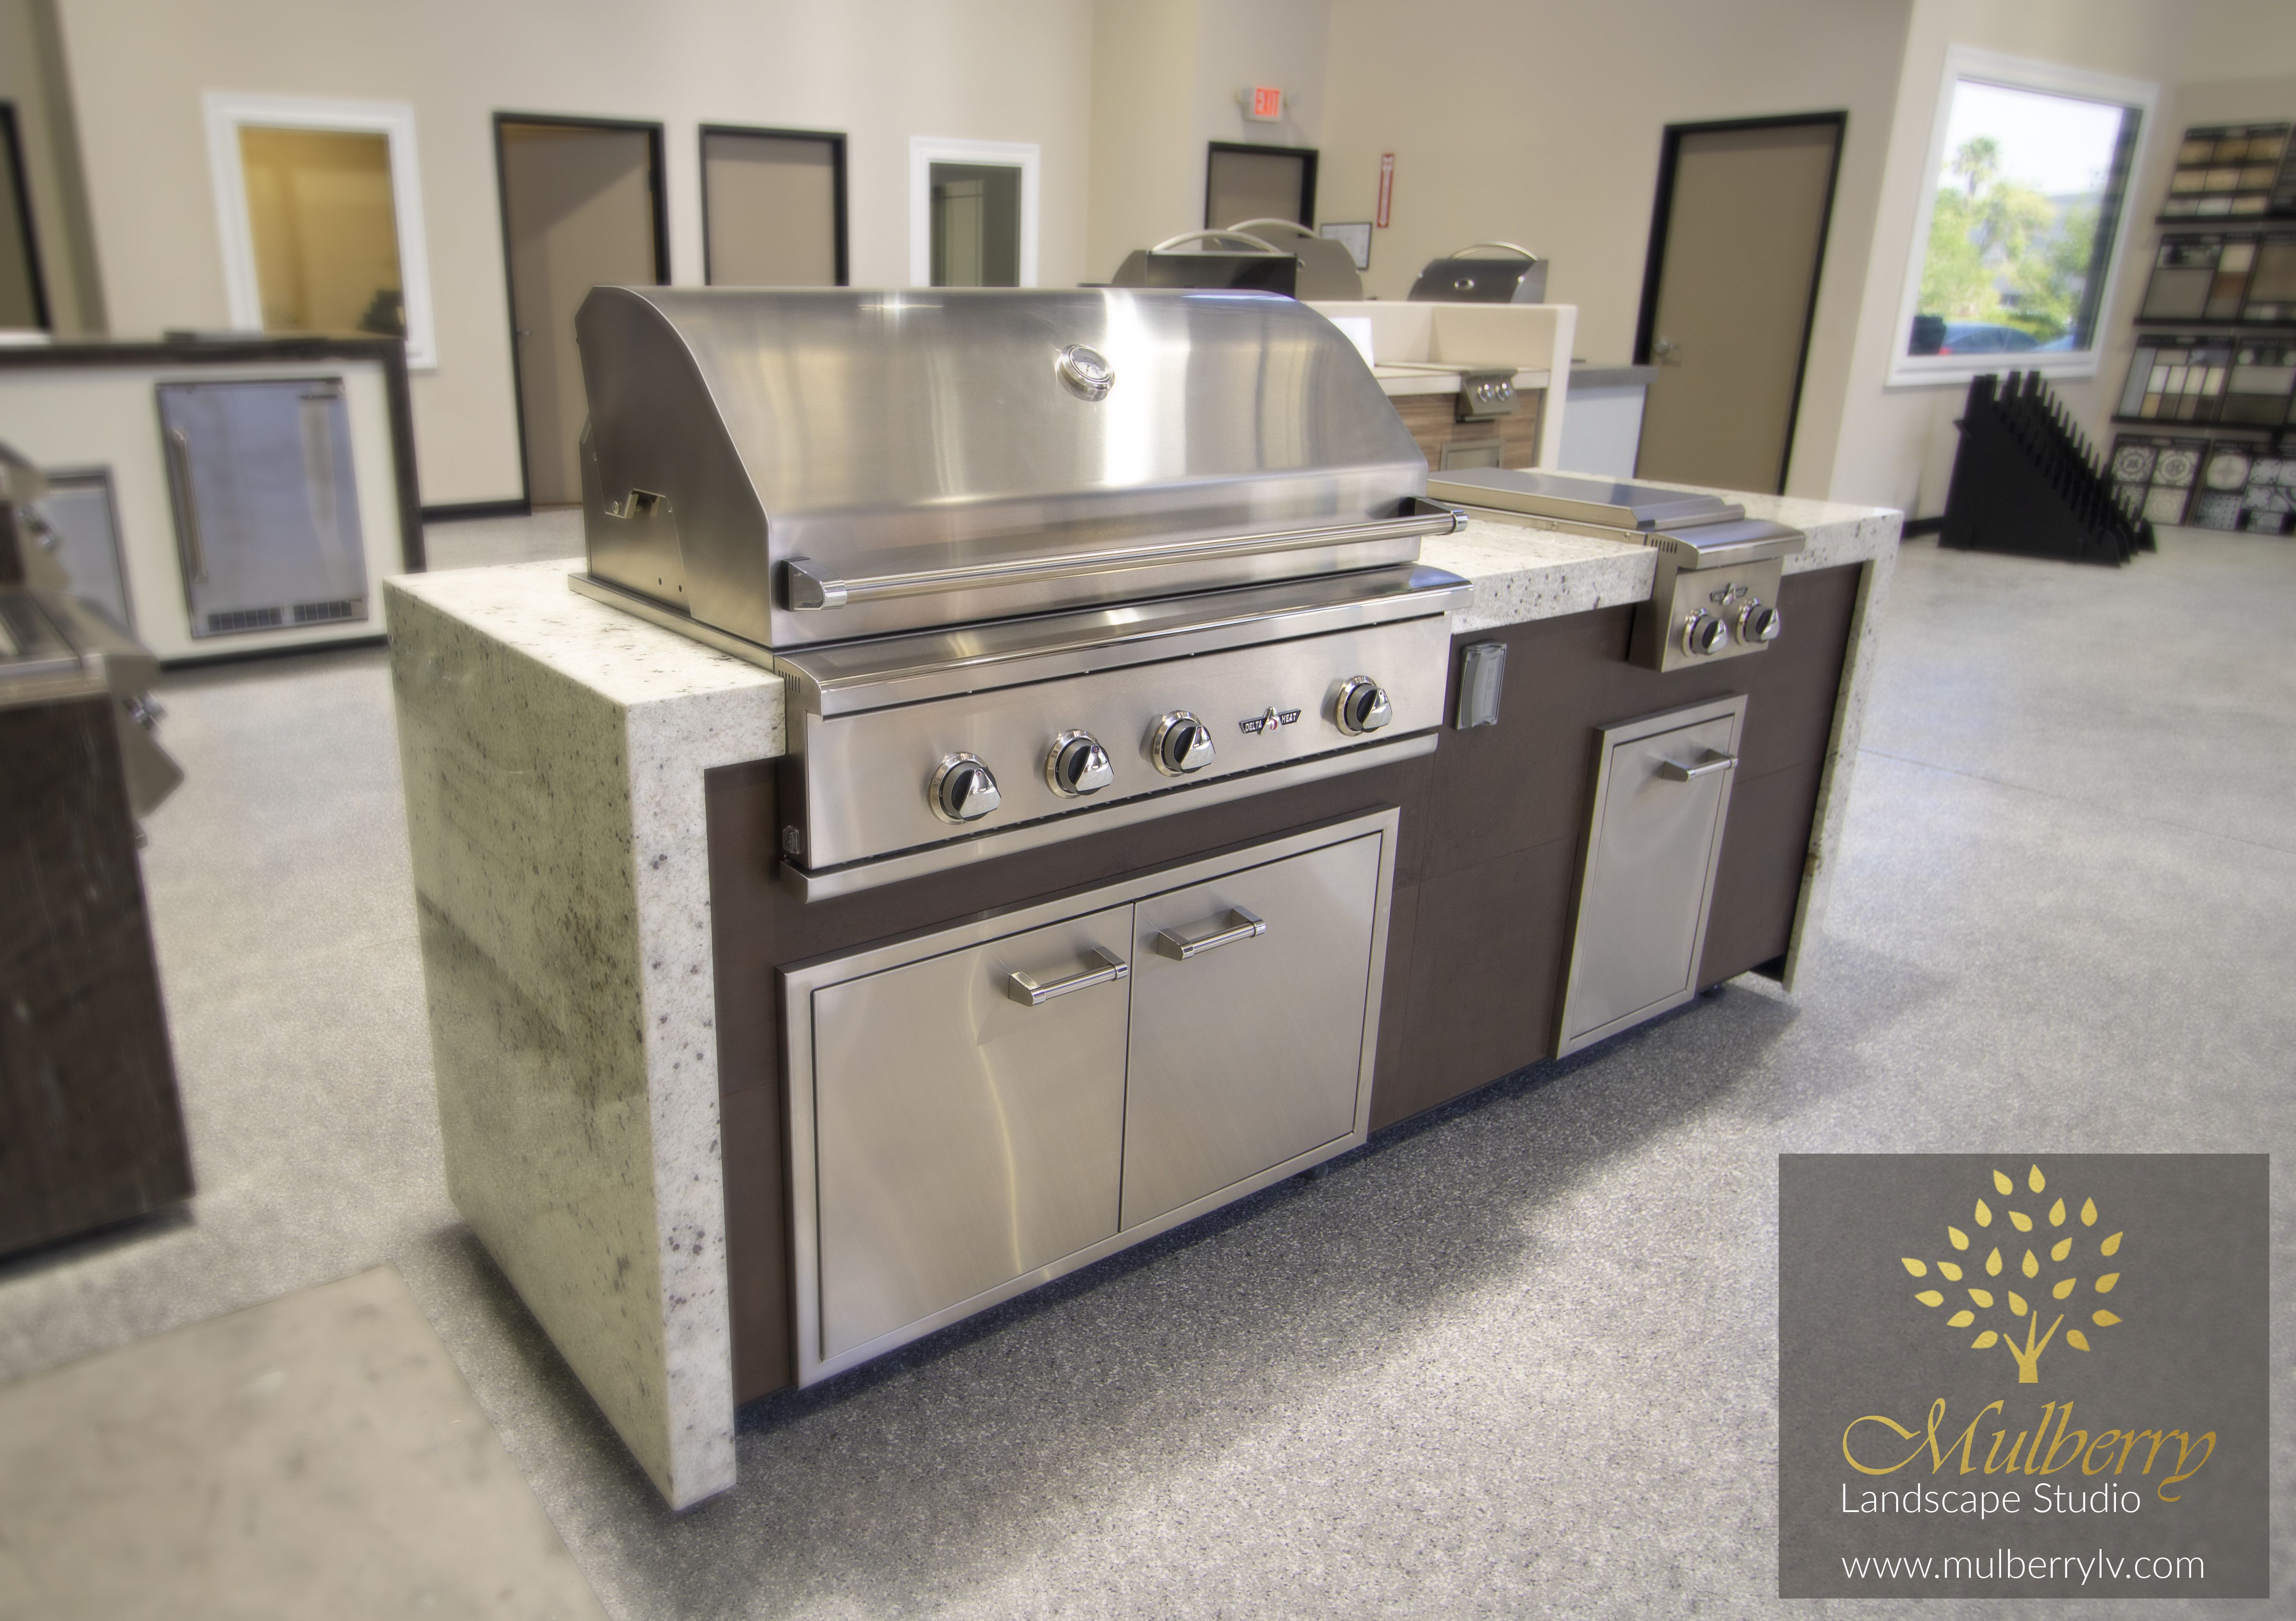 Delta Heat Grill Double Waterfall Countertop Mulberry Landscape